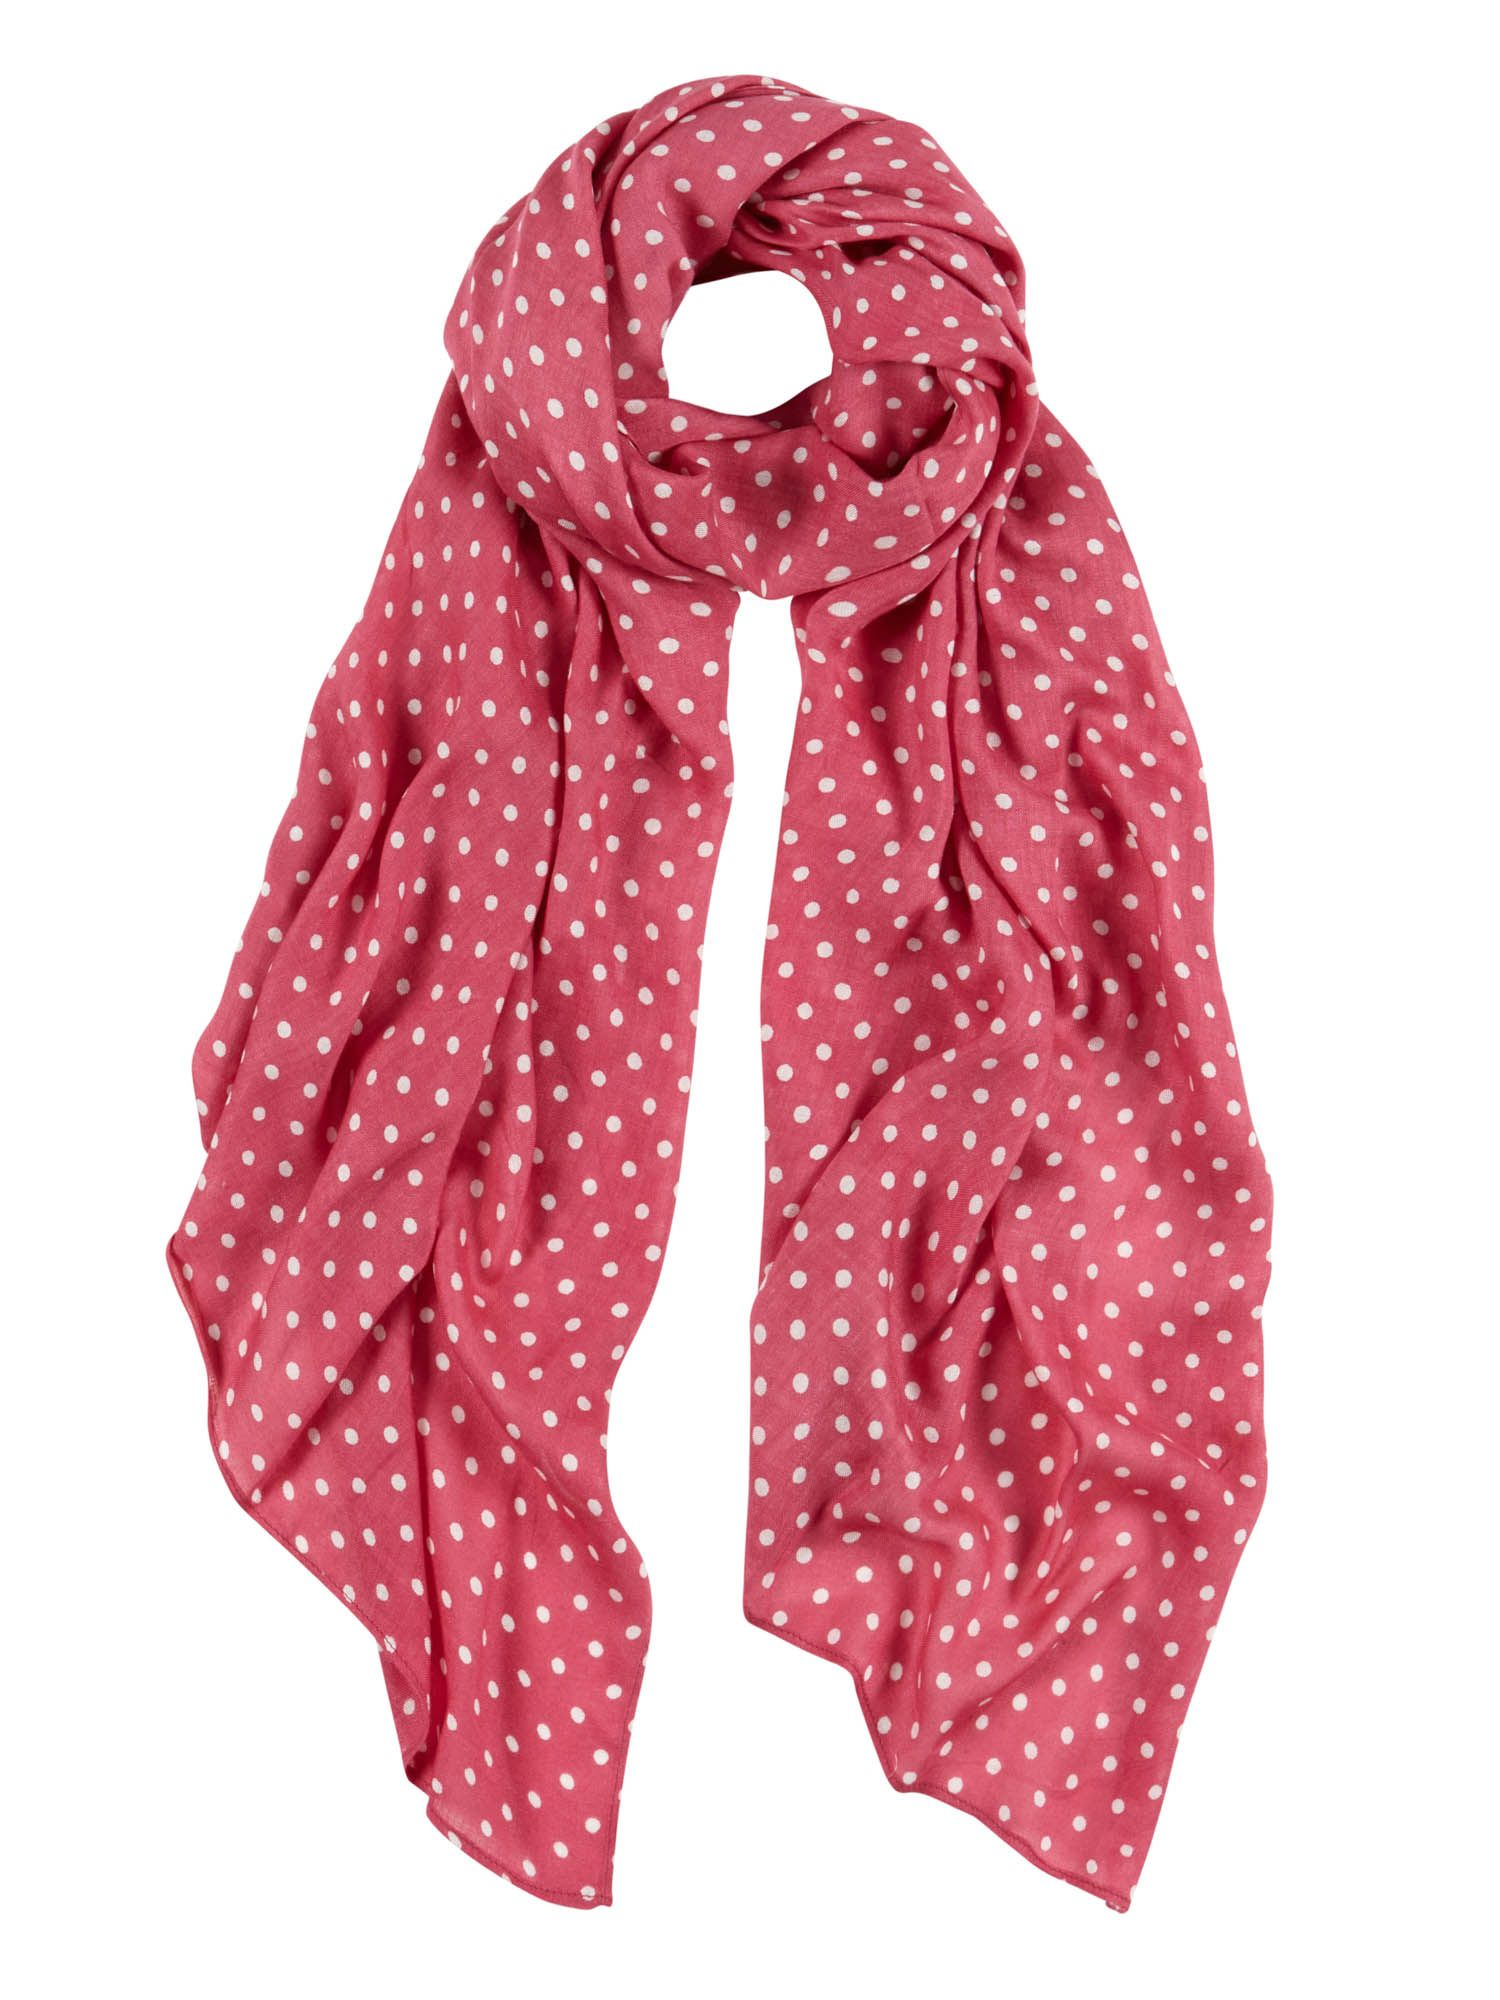 Shop 1950s Hair Accessories Tulchan Polka Dot Scarf £9.99 AT vintagedancer.com